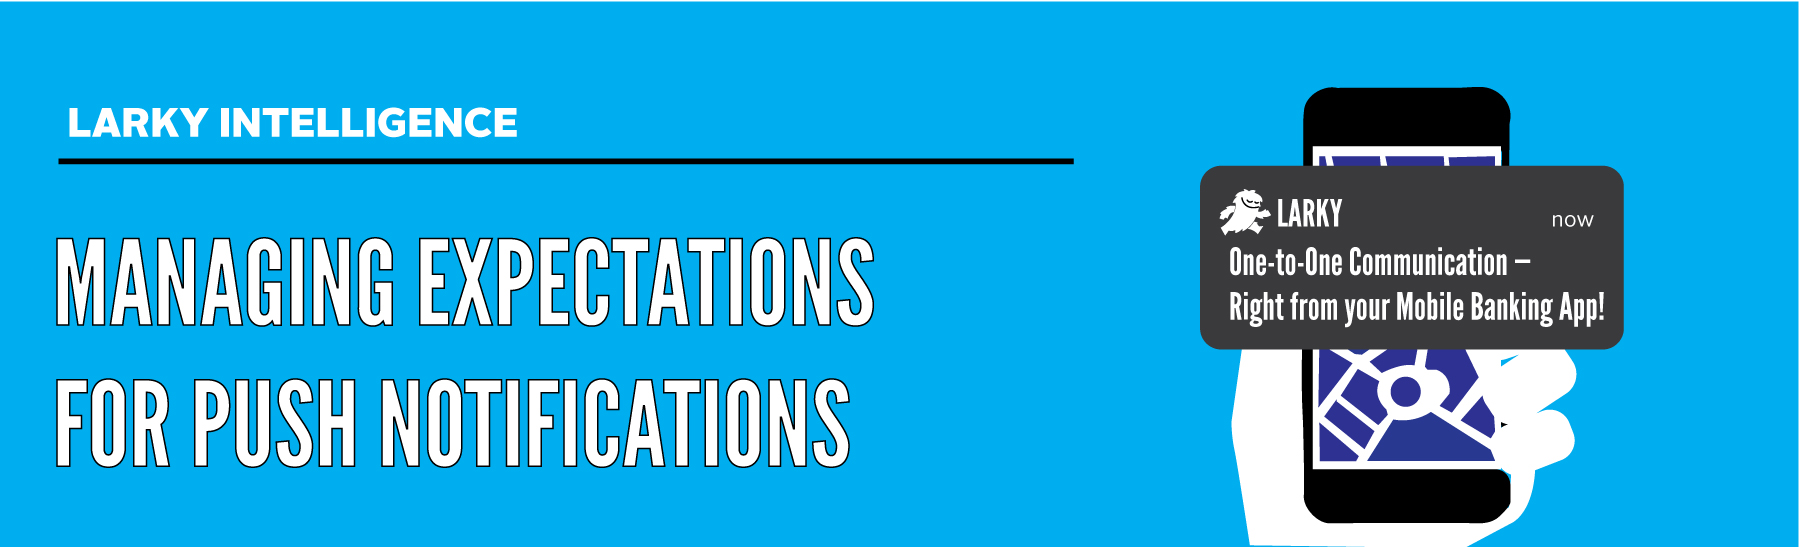 Managing Expectations for Push Notifications